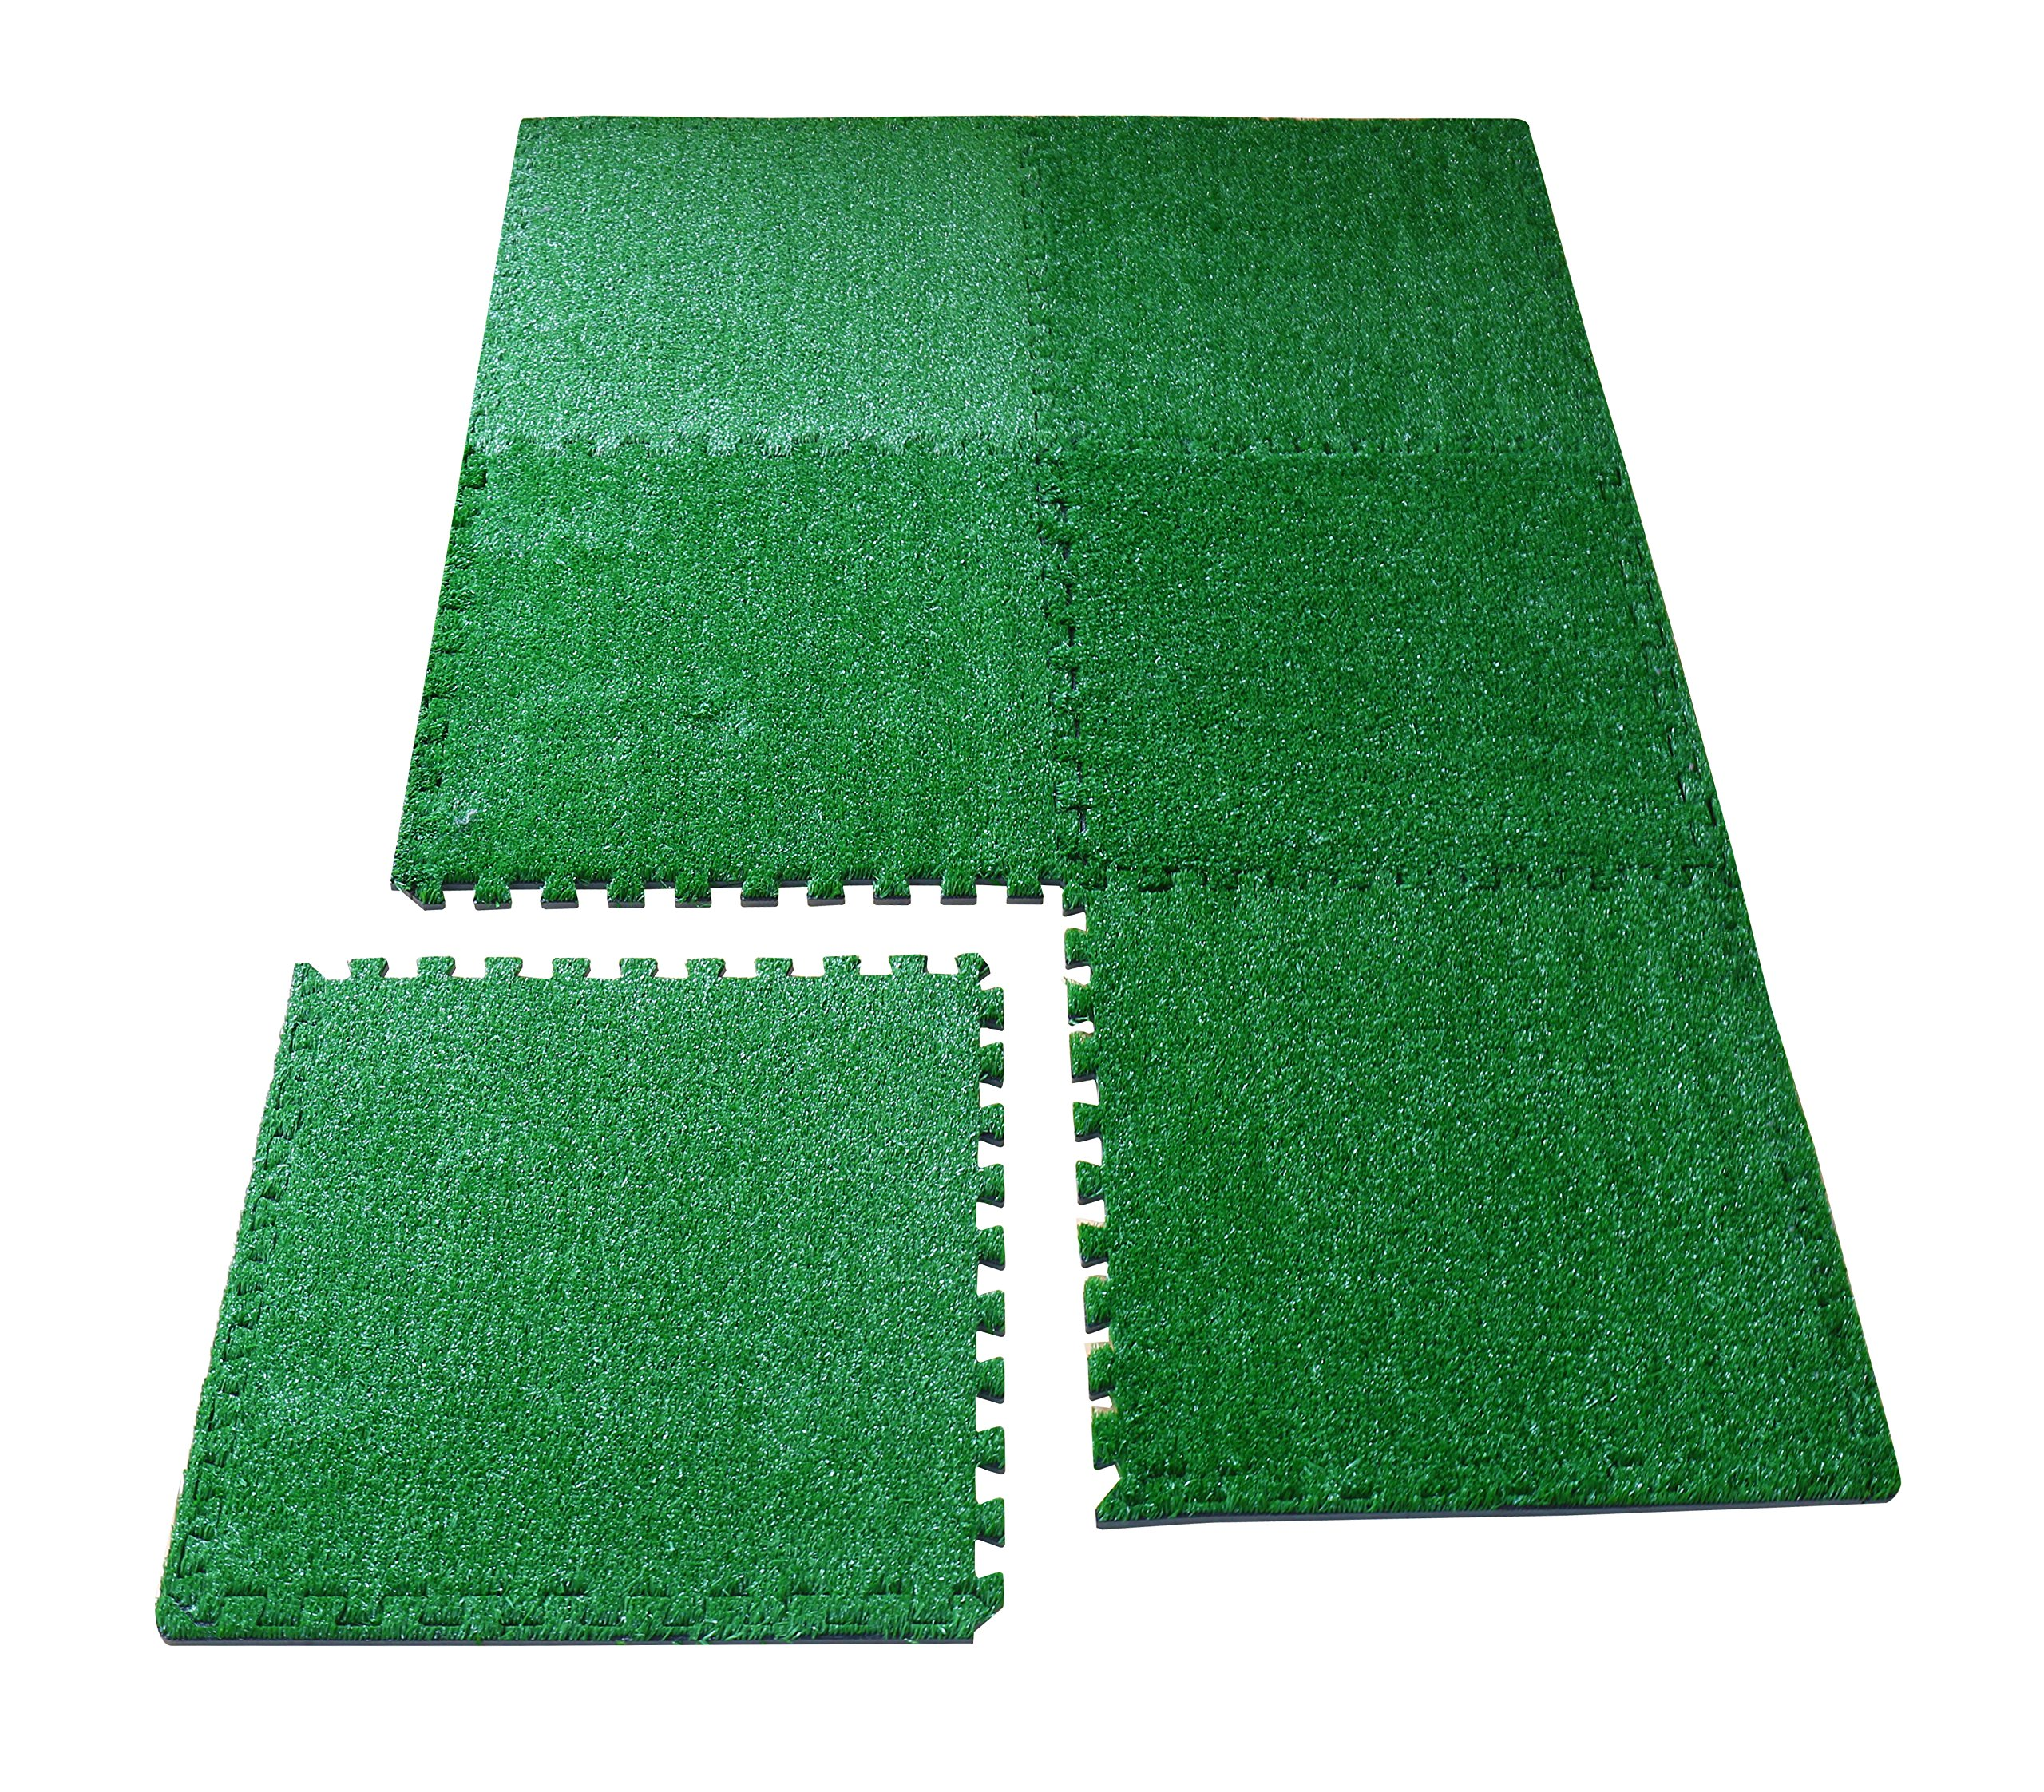 LaFamille Artificial Grass Interlocking Foam Mat 6 Tiles